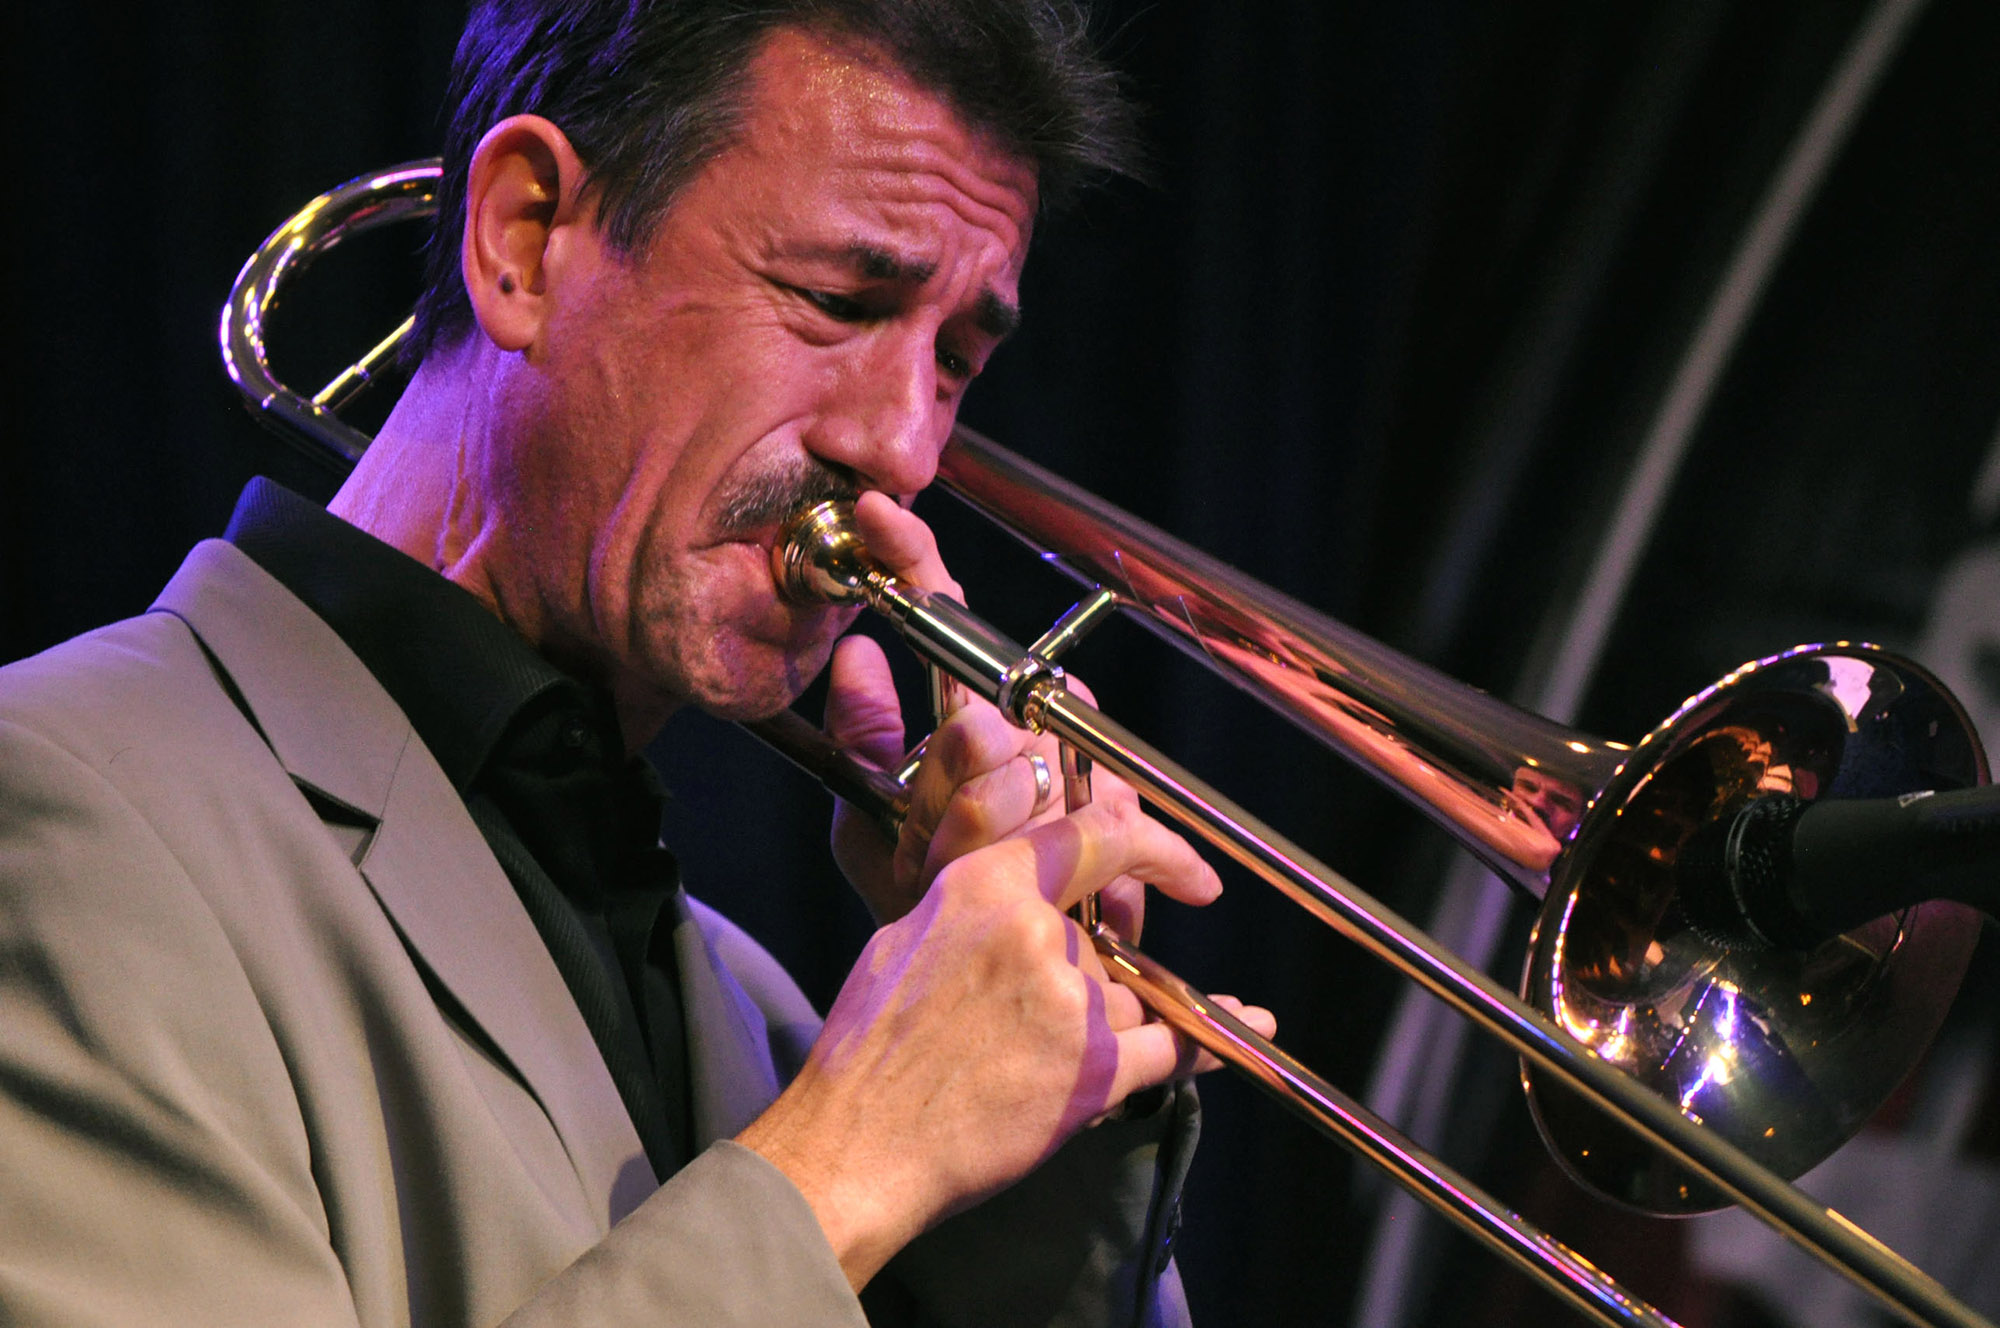 UCO presents a performance by the faculty combo 5th Street Jazz Collective featuring world-renowned trombonist John Fedchock at 7:30 p.m. Nov. 5 at the UCO Jazz Lab, 100 E. Fifth Street in Edmond.